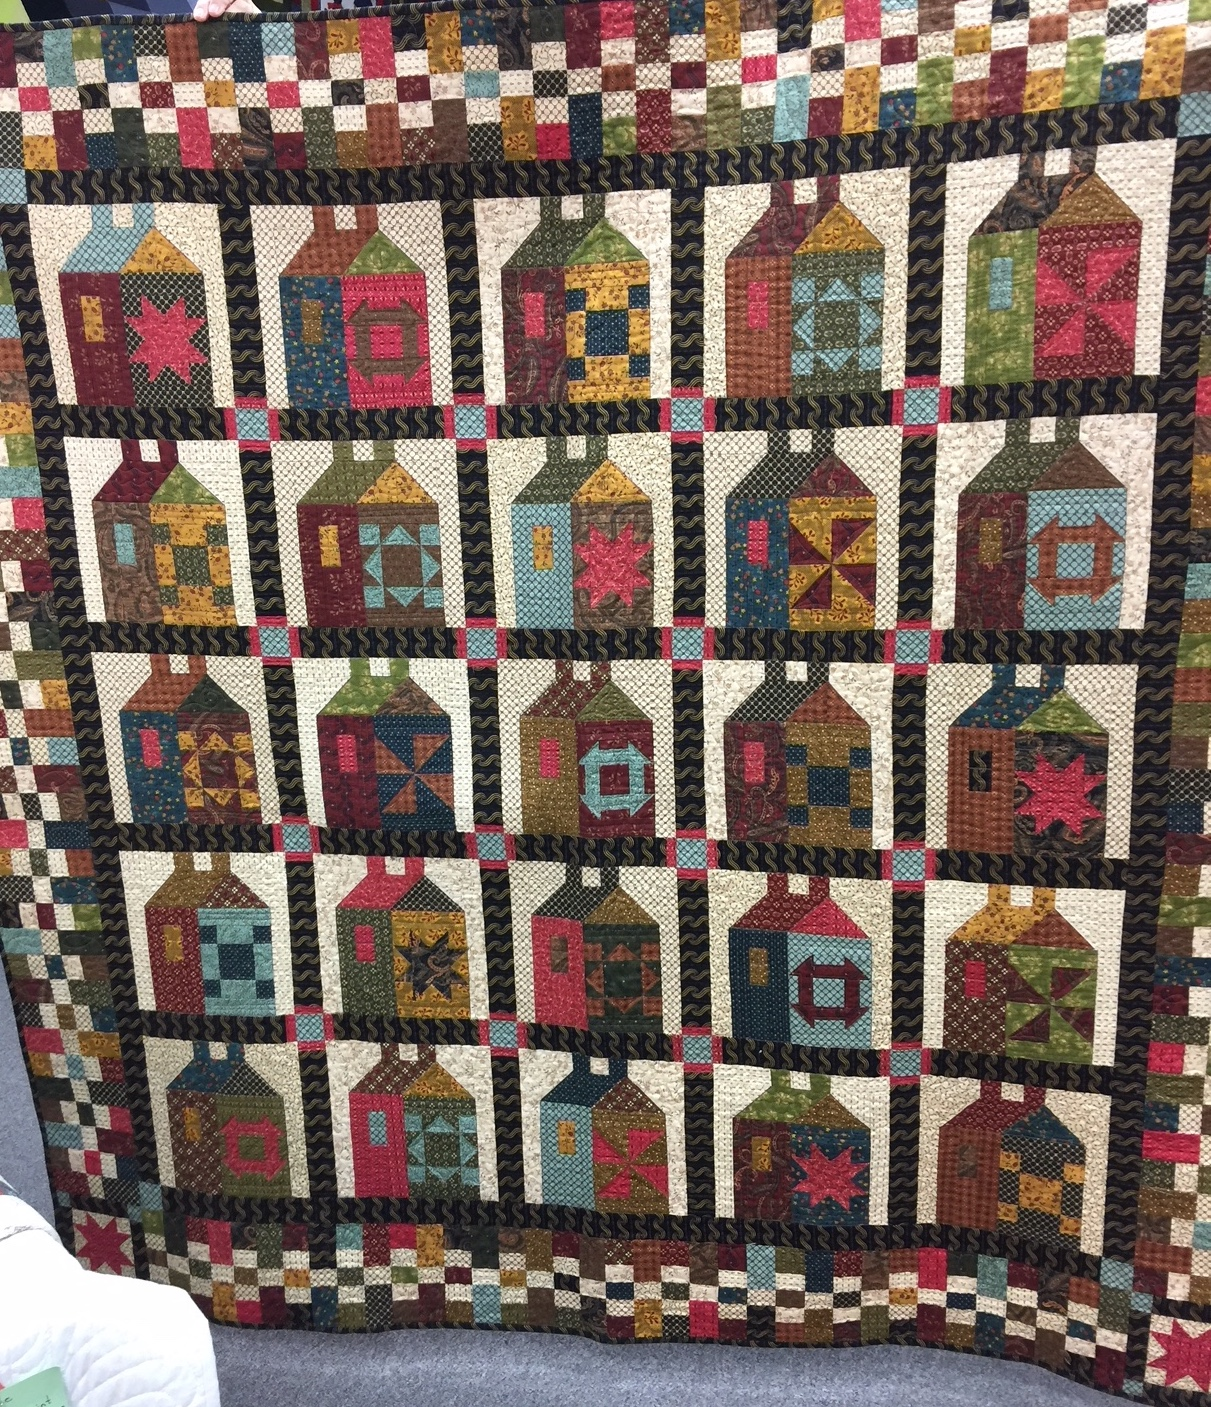 Quilt Cove Store Fabric Quilting Supplies Kits Blocks Of The